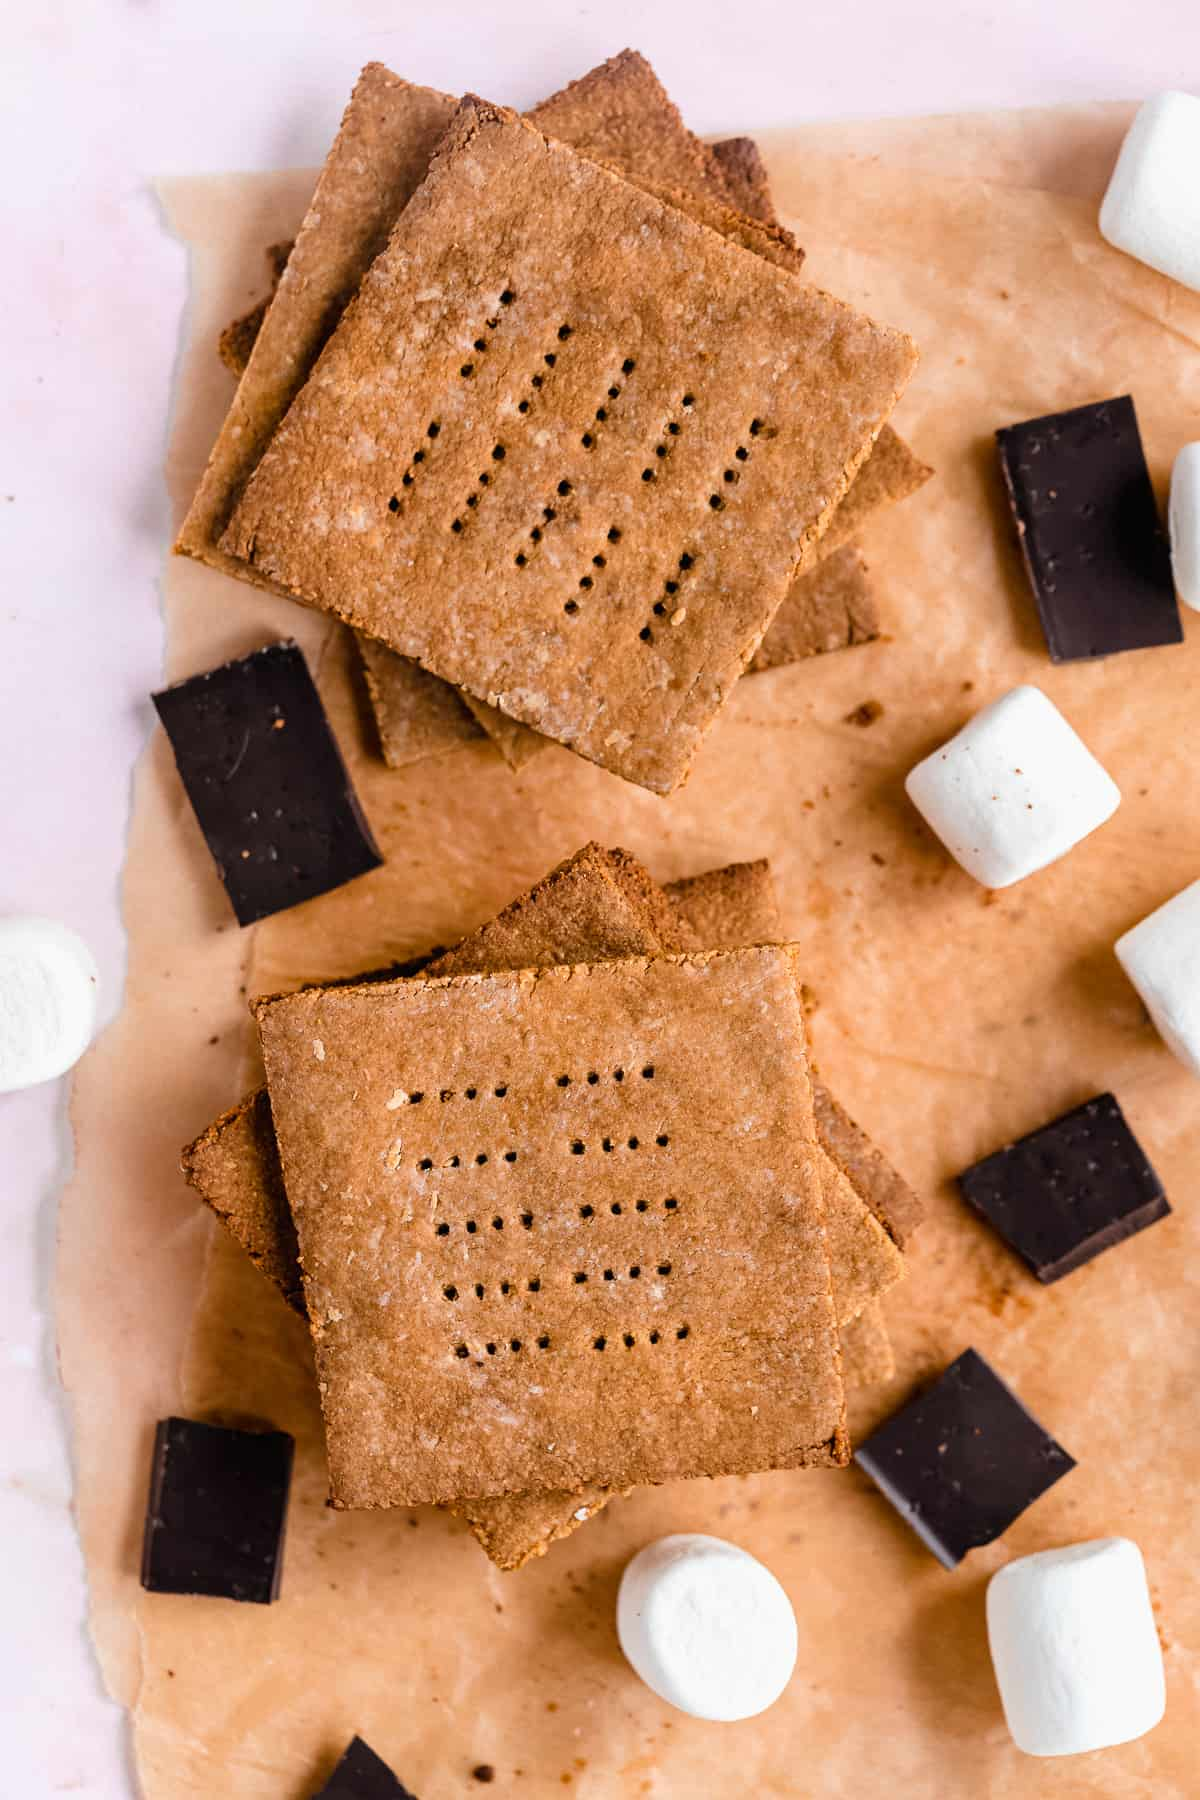 Close up photo of Homemade Graham Crackers stacked on top of one another on parchment paper.  Chocolate pieces and marshmallows are scattered around.